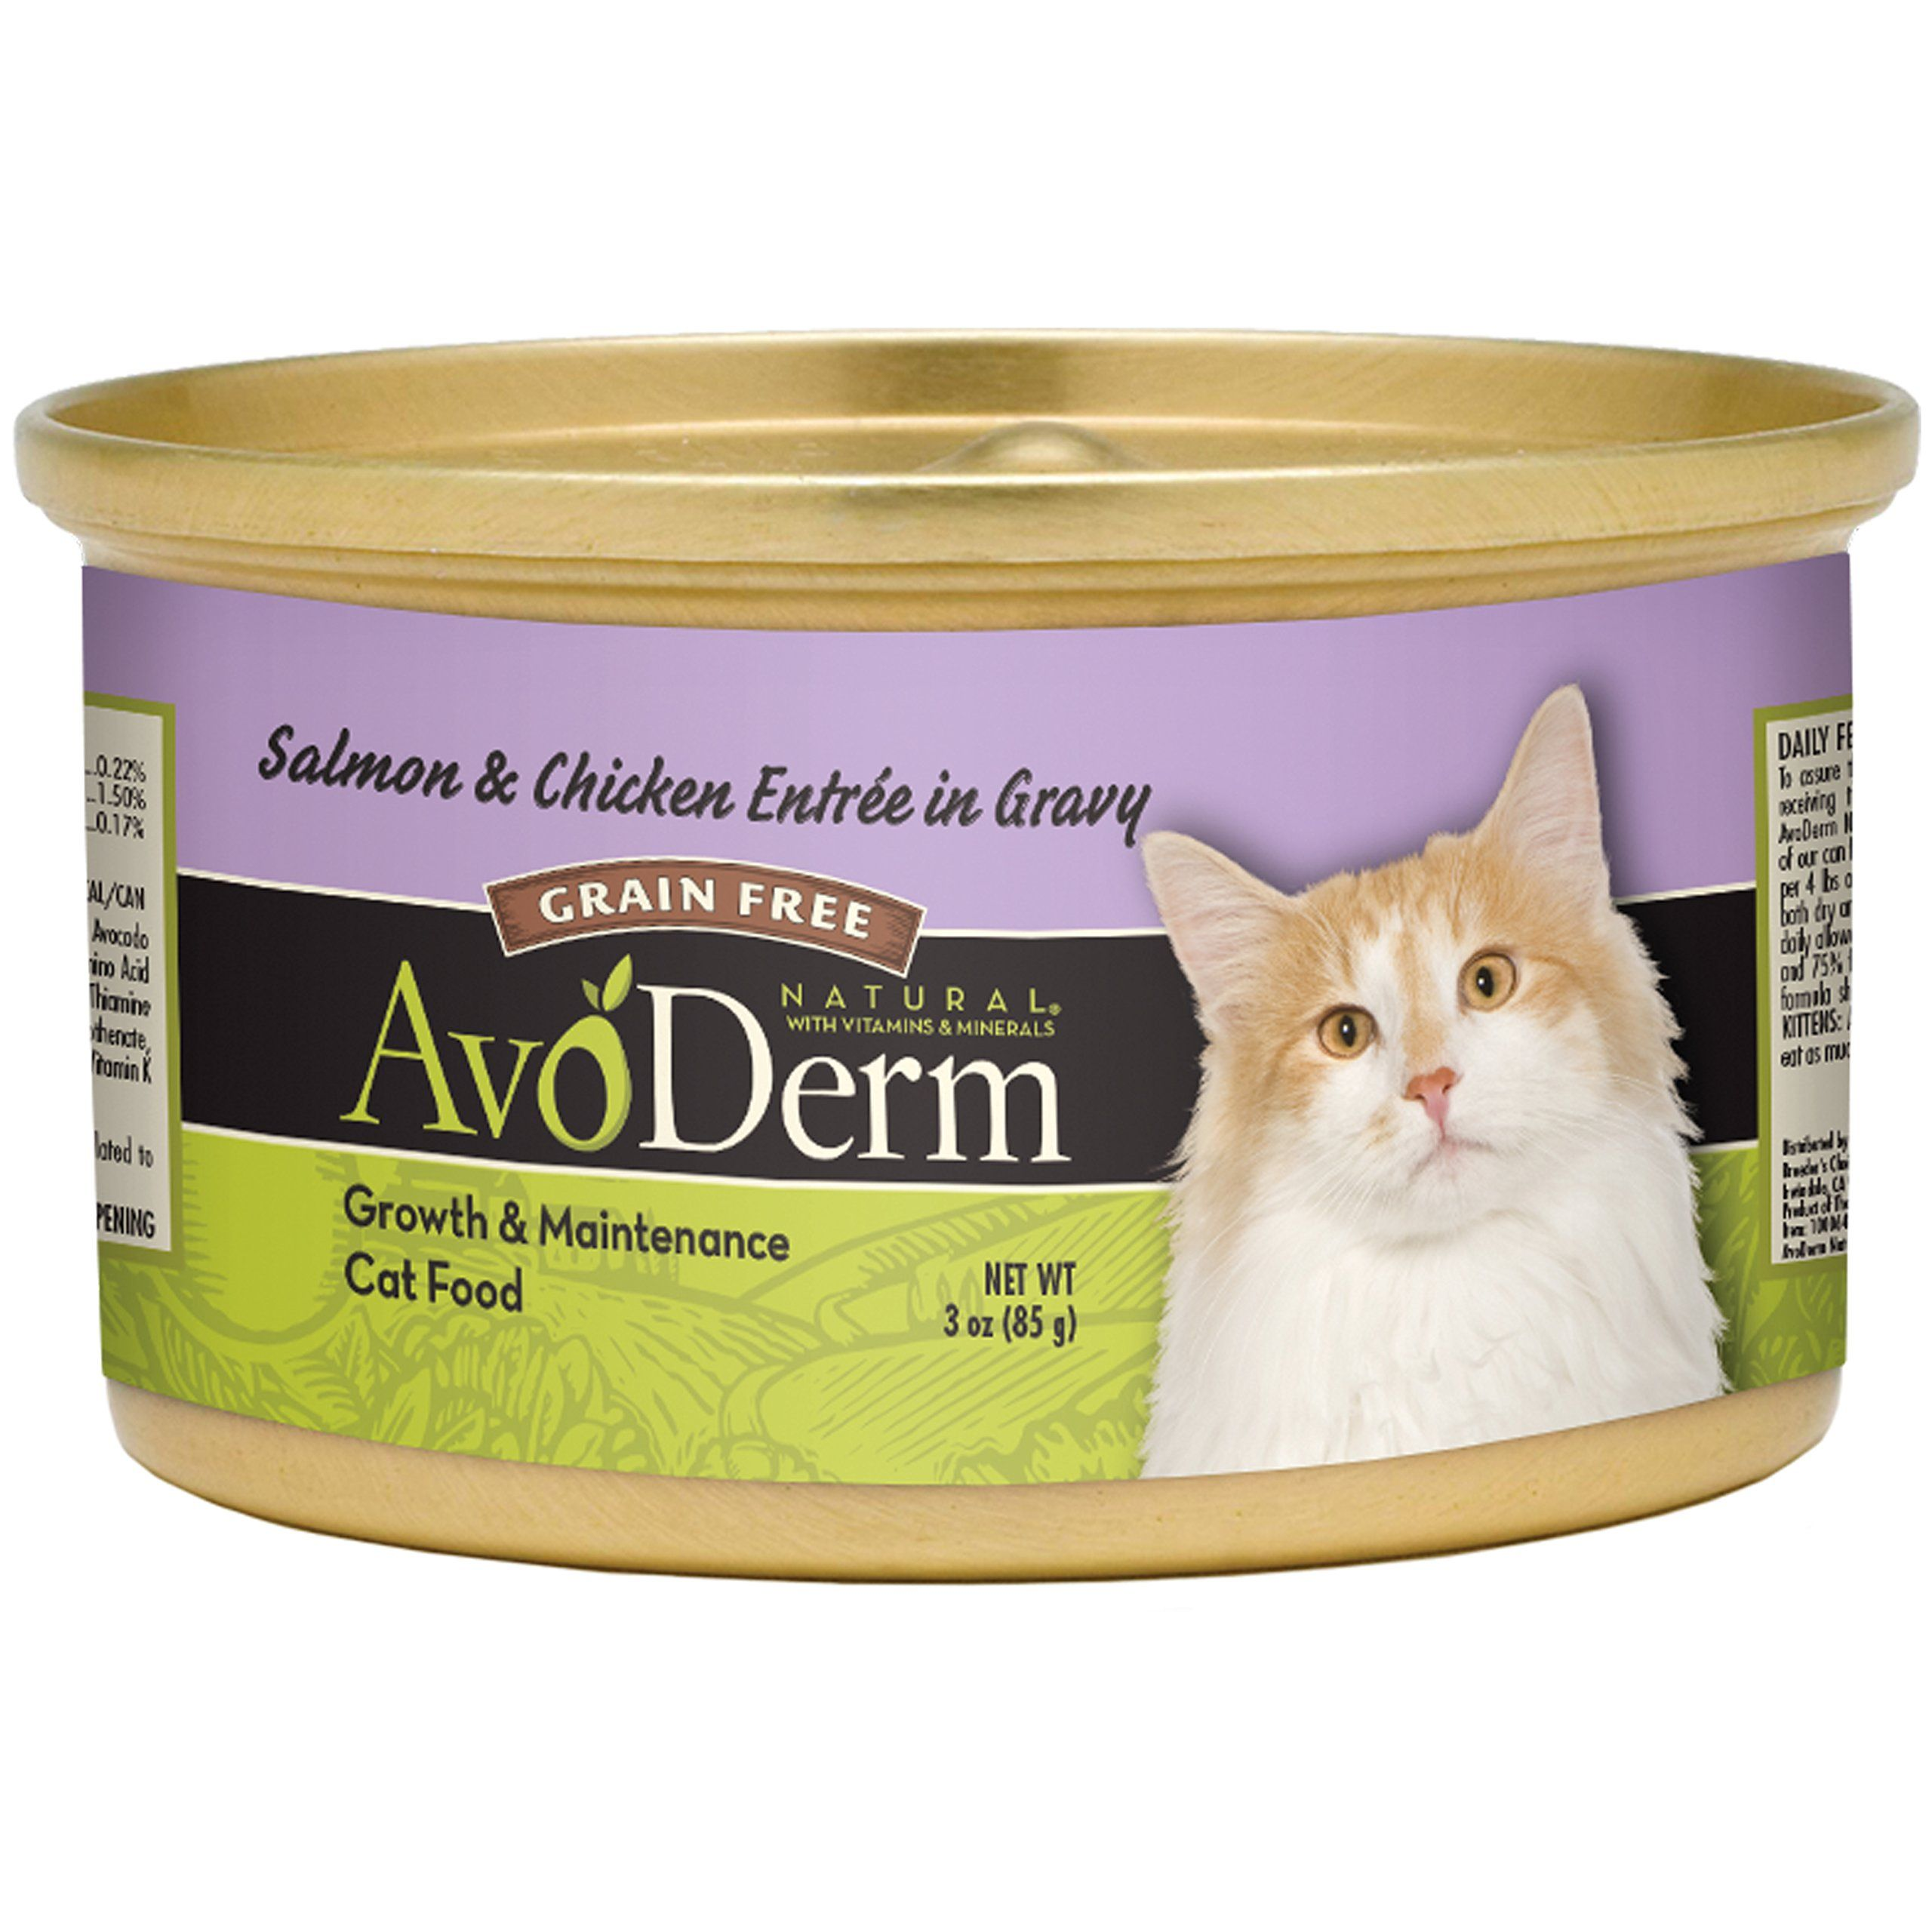 Avoderm natural grain free salmon and chicken entree in